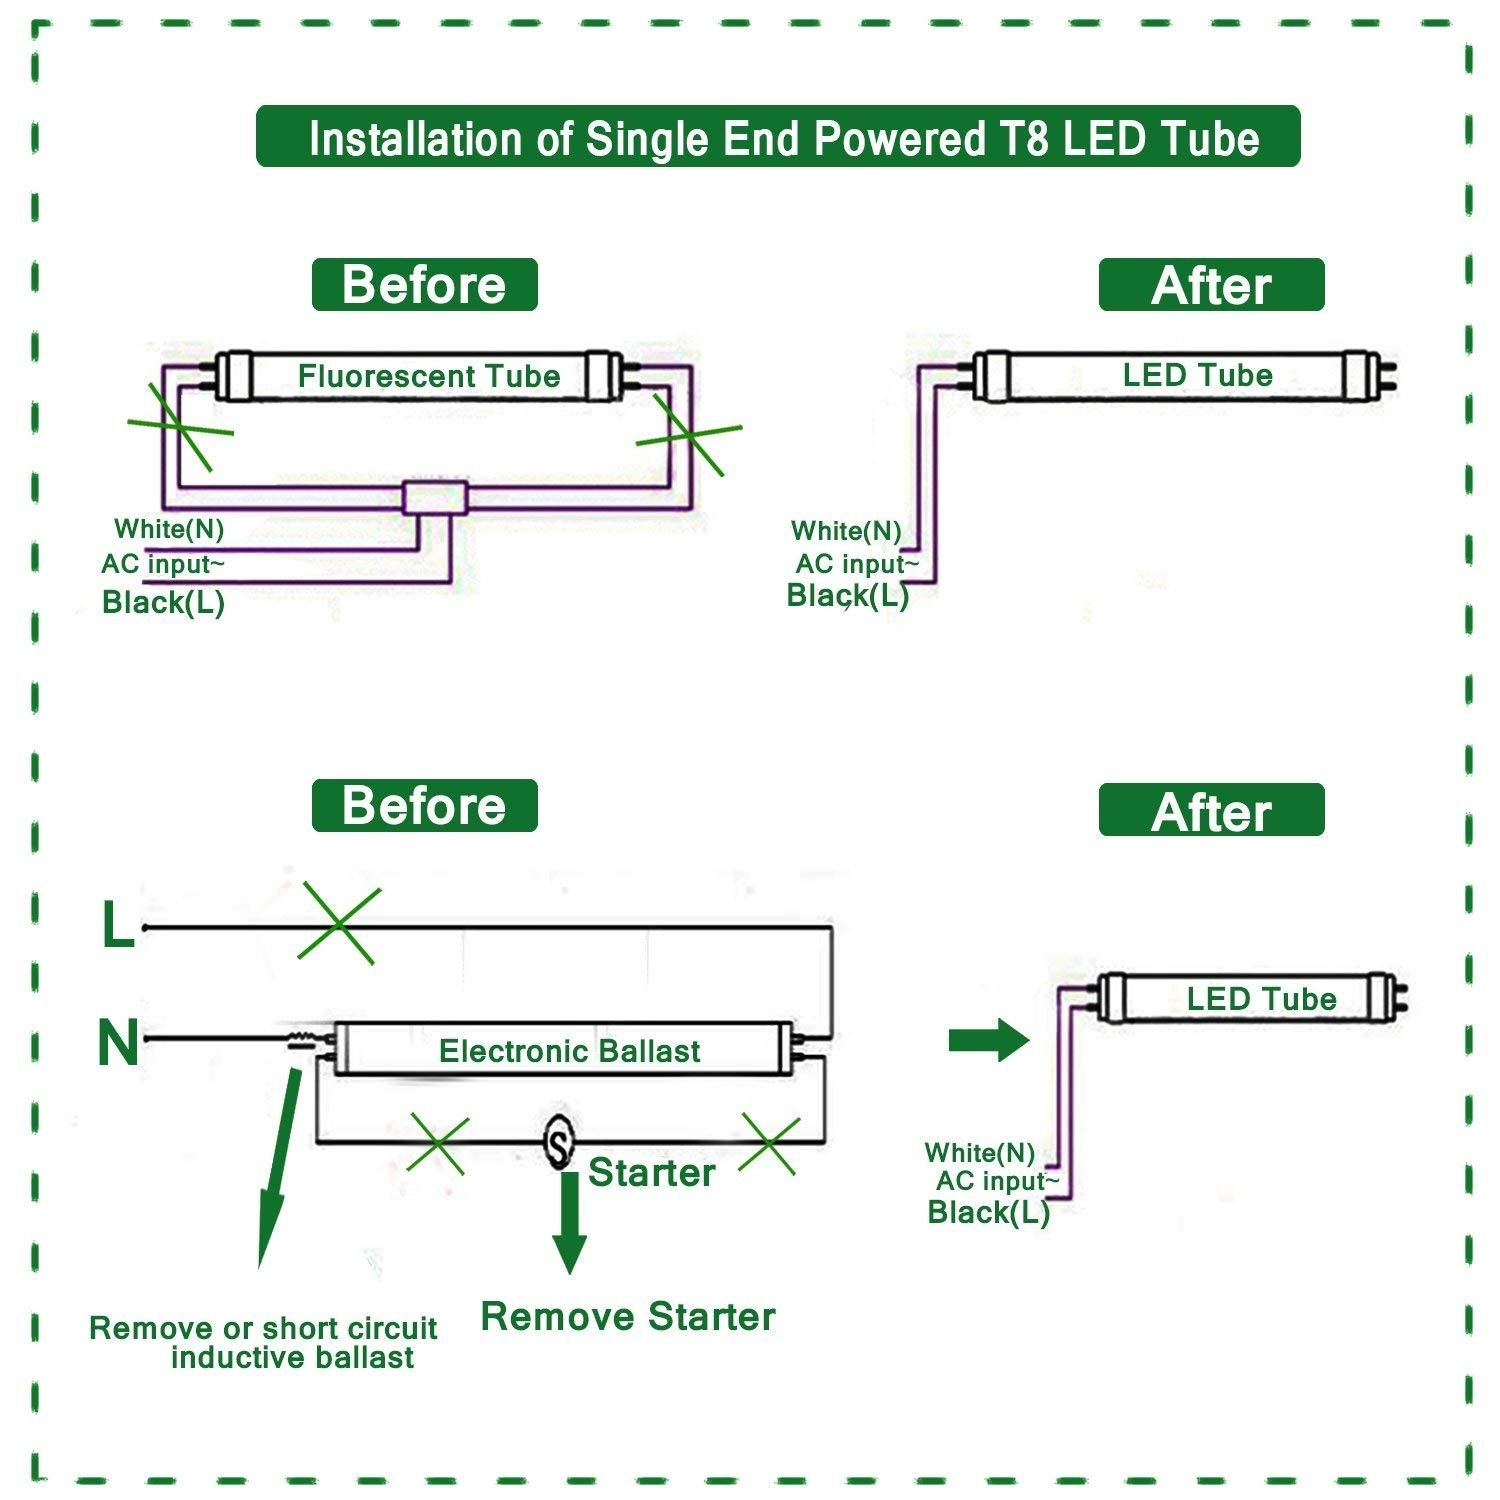 Led Fluorescent Tube Wiring Diagram Bookingritzcarlton Info Led Tubes Led Fluorescent Tube Fluorescent Tube